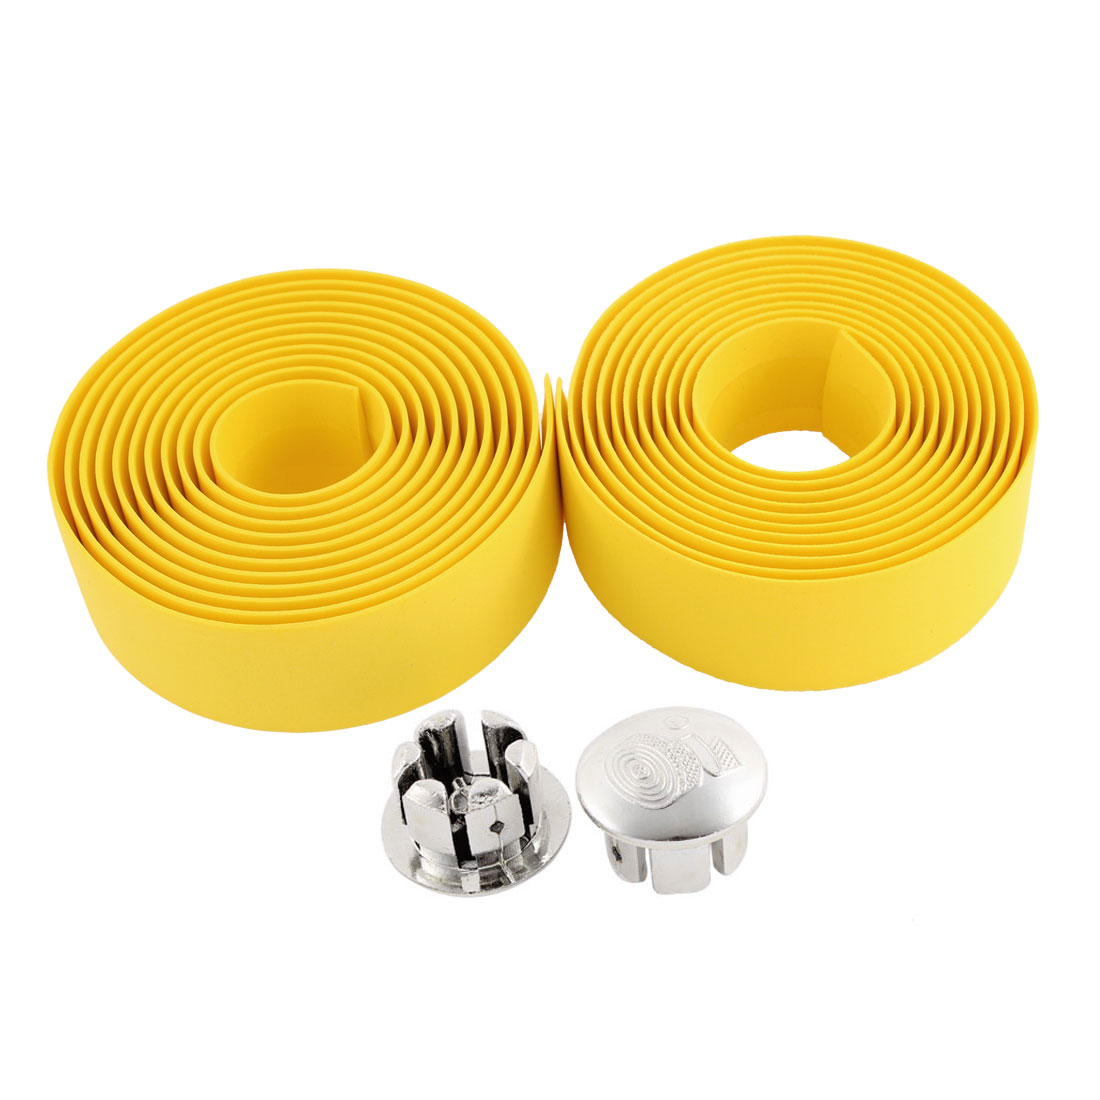 2 Pcs Yellow Road Bike Handlebar Tape Bicycle Bar Wrap 200cm Length